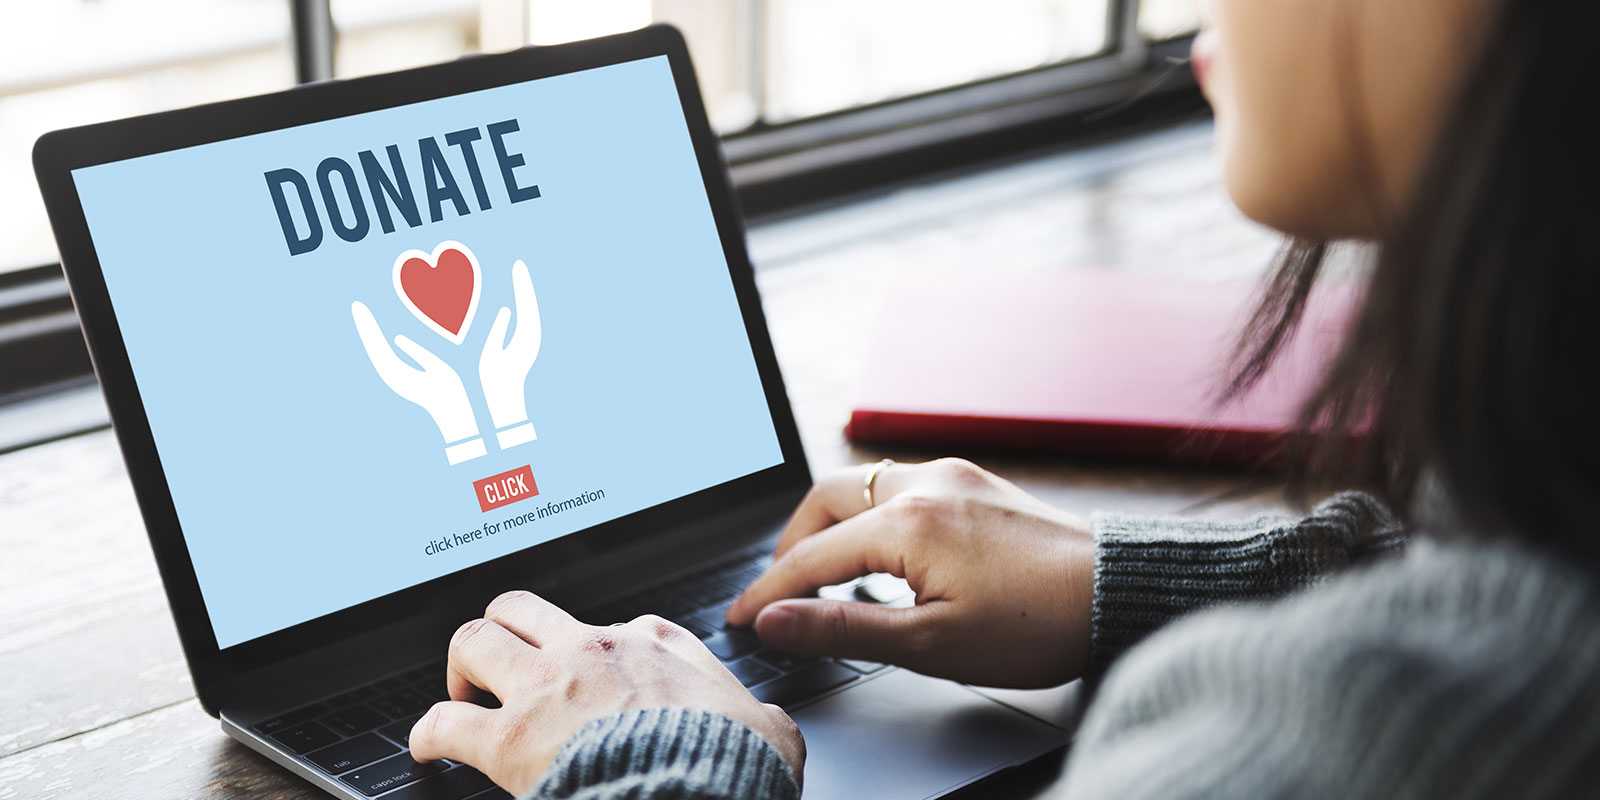 Picture of person on laptop with Donate link